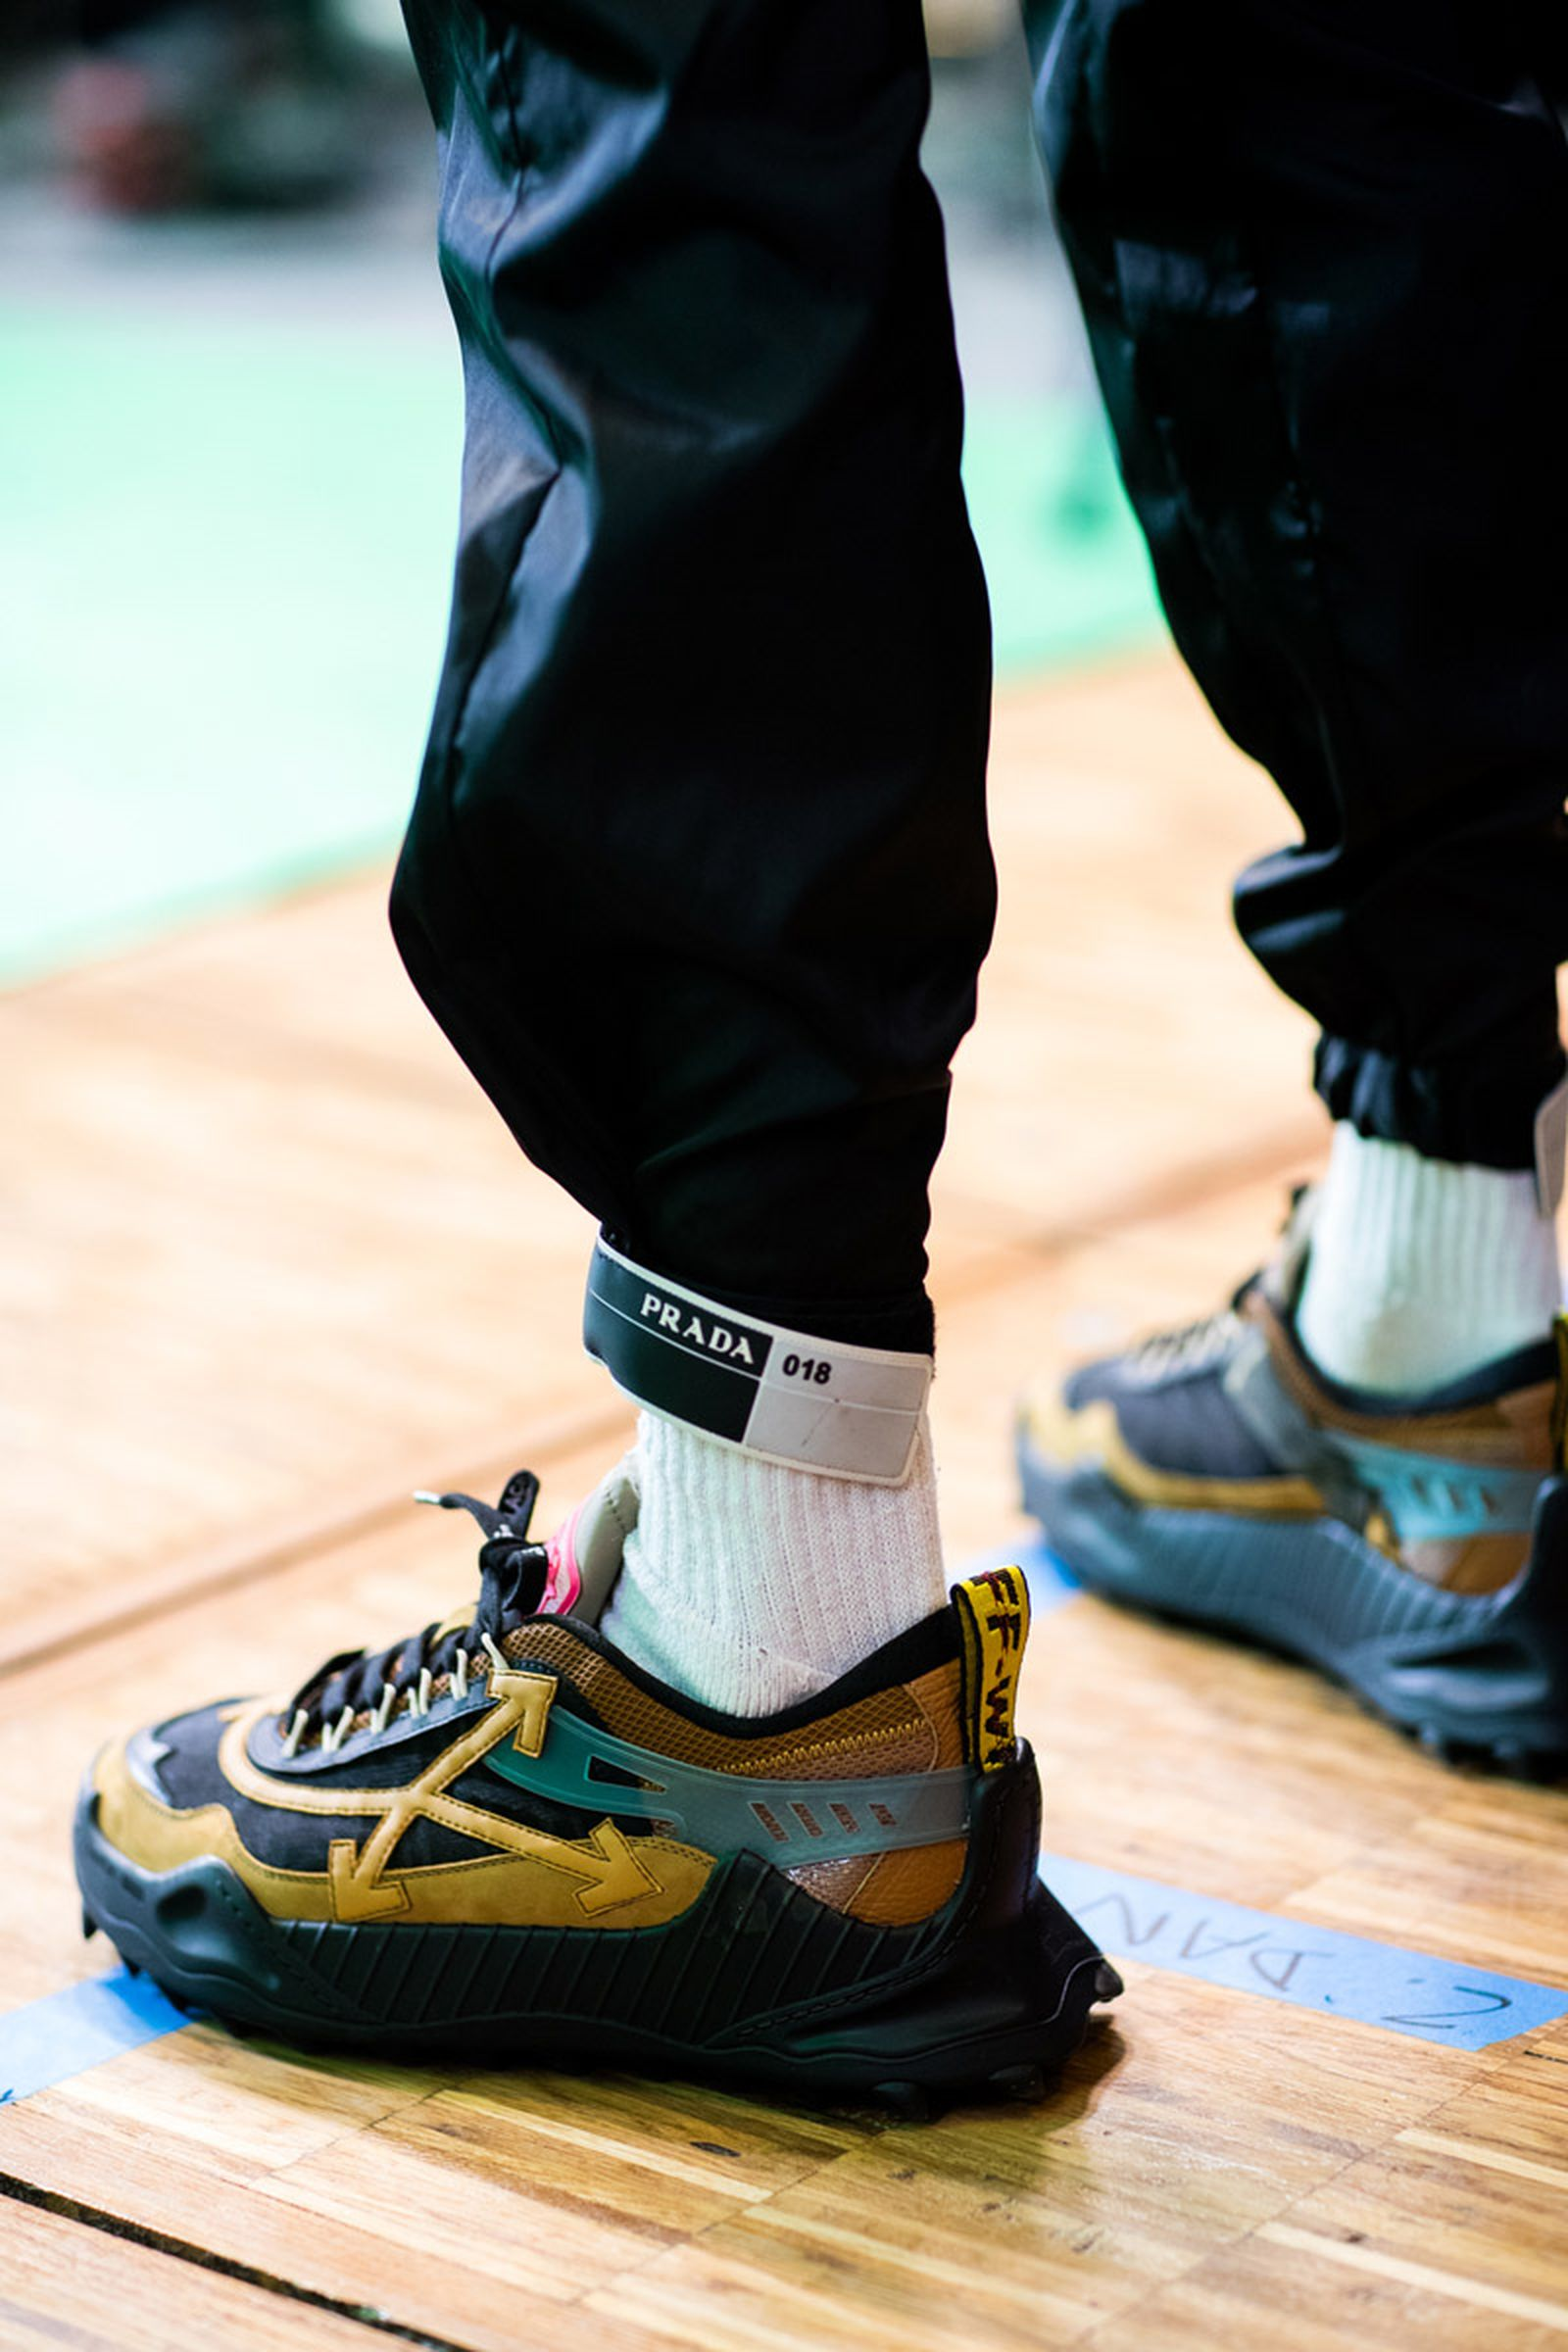 off white fw19 sneakers backstage look OFF-WHITE c/o Virgil Abloh pfw